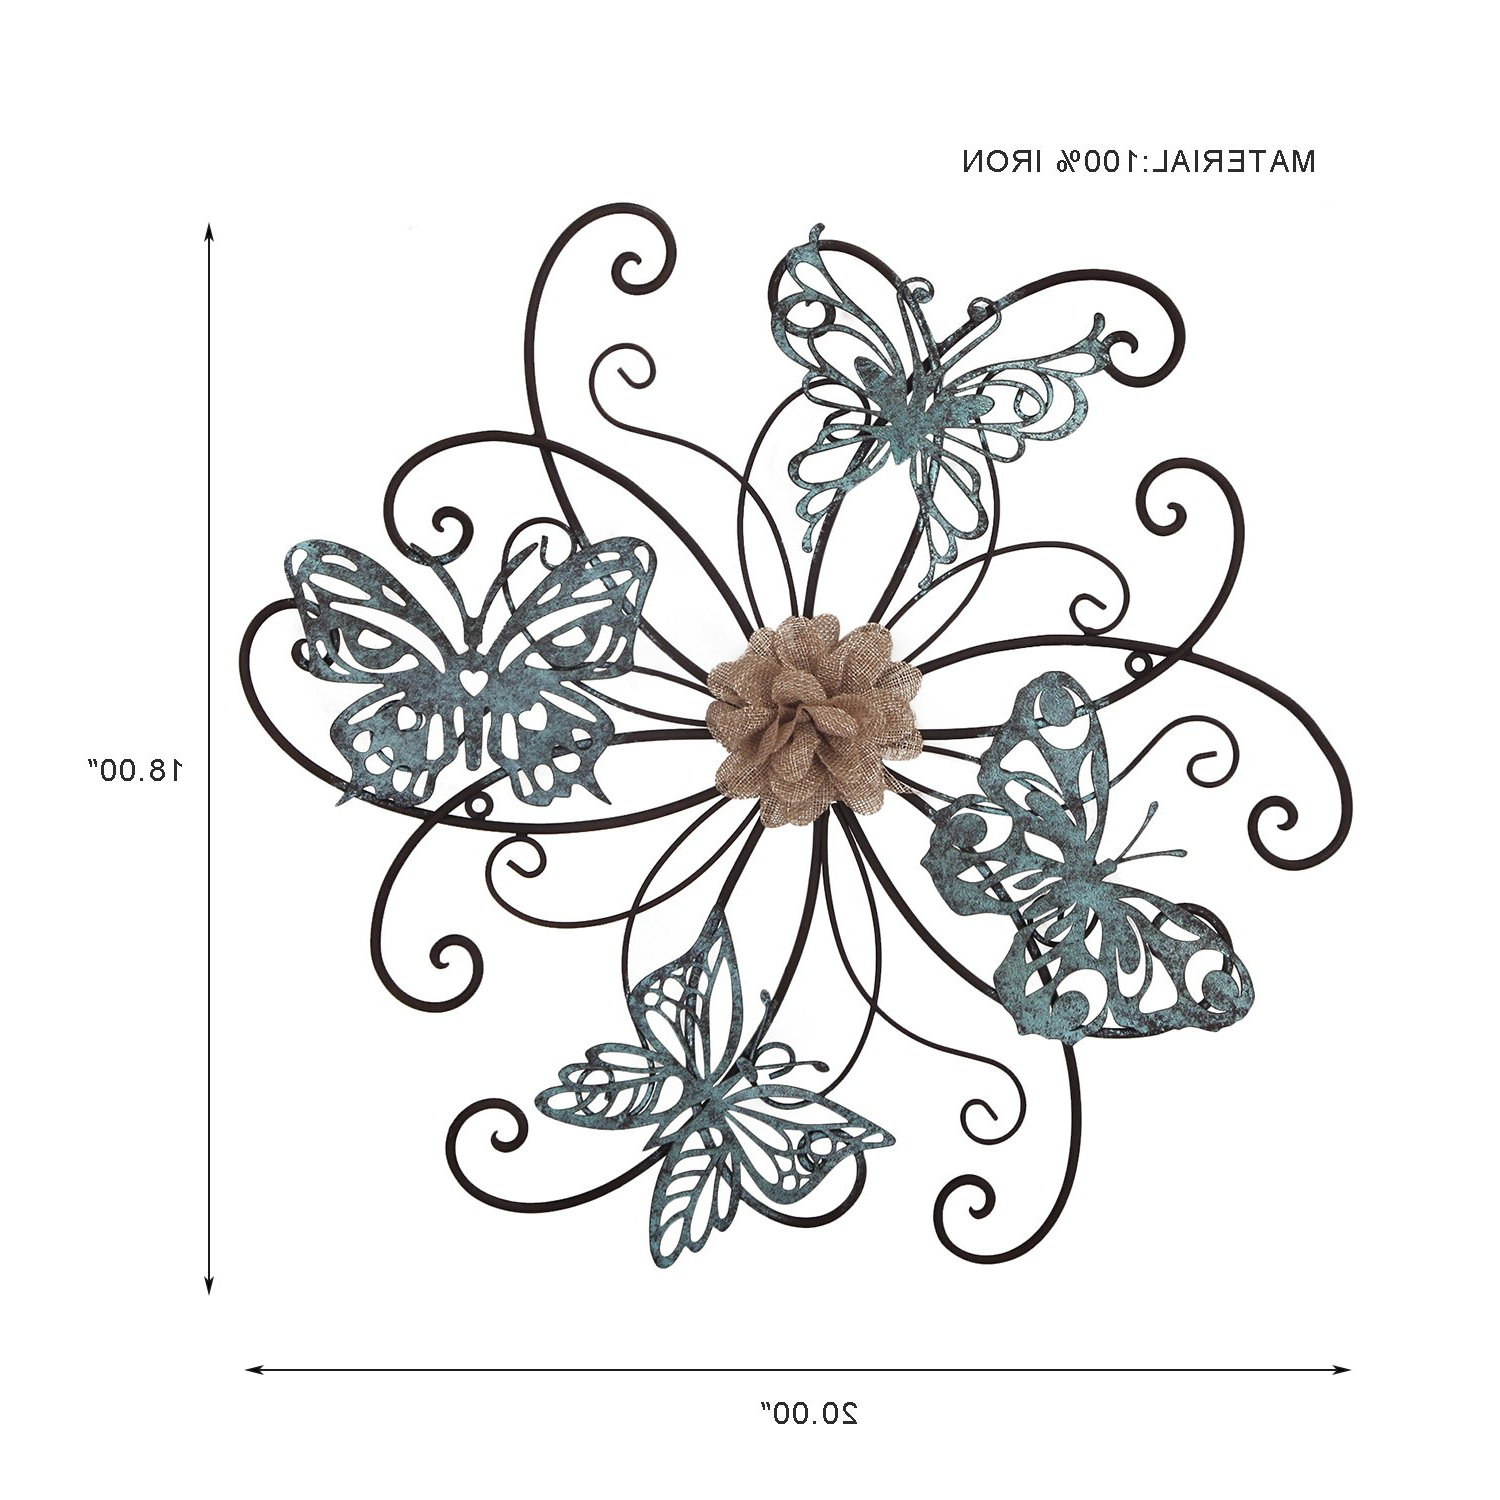 Flower And Butterfly Urban Design Metal Wall Decor Regarding Fashionable Amazon: Home's Art Flower And Butterfly Urban Design Metal Wall (View 3 of 20)